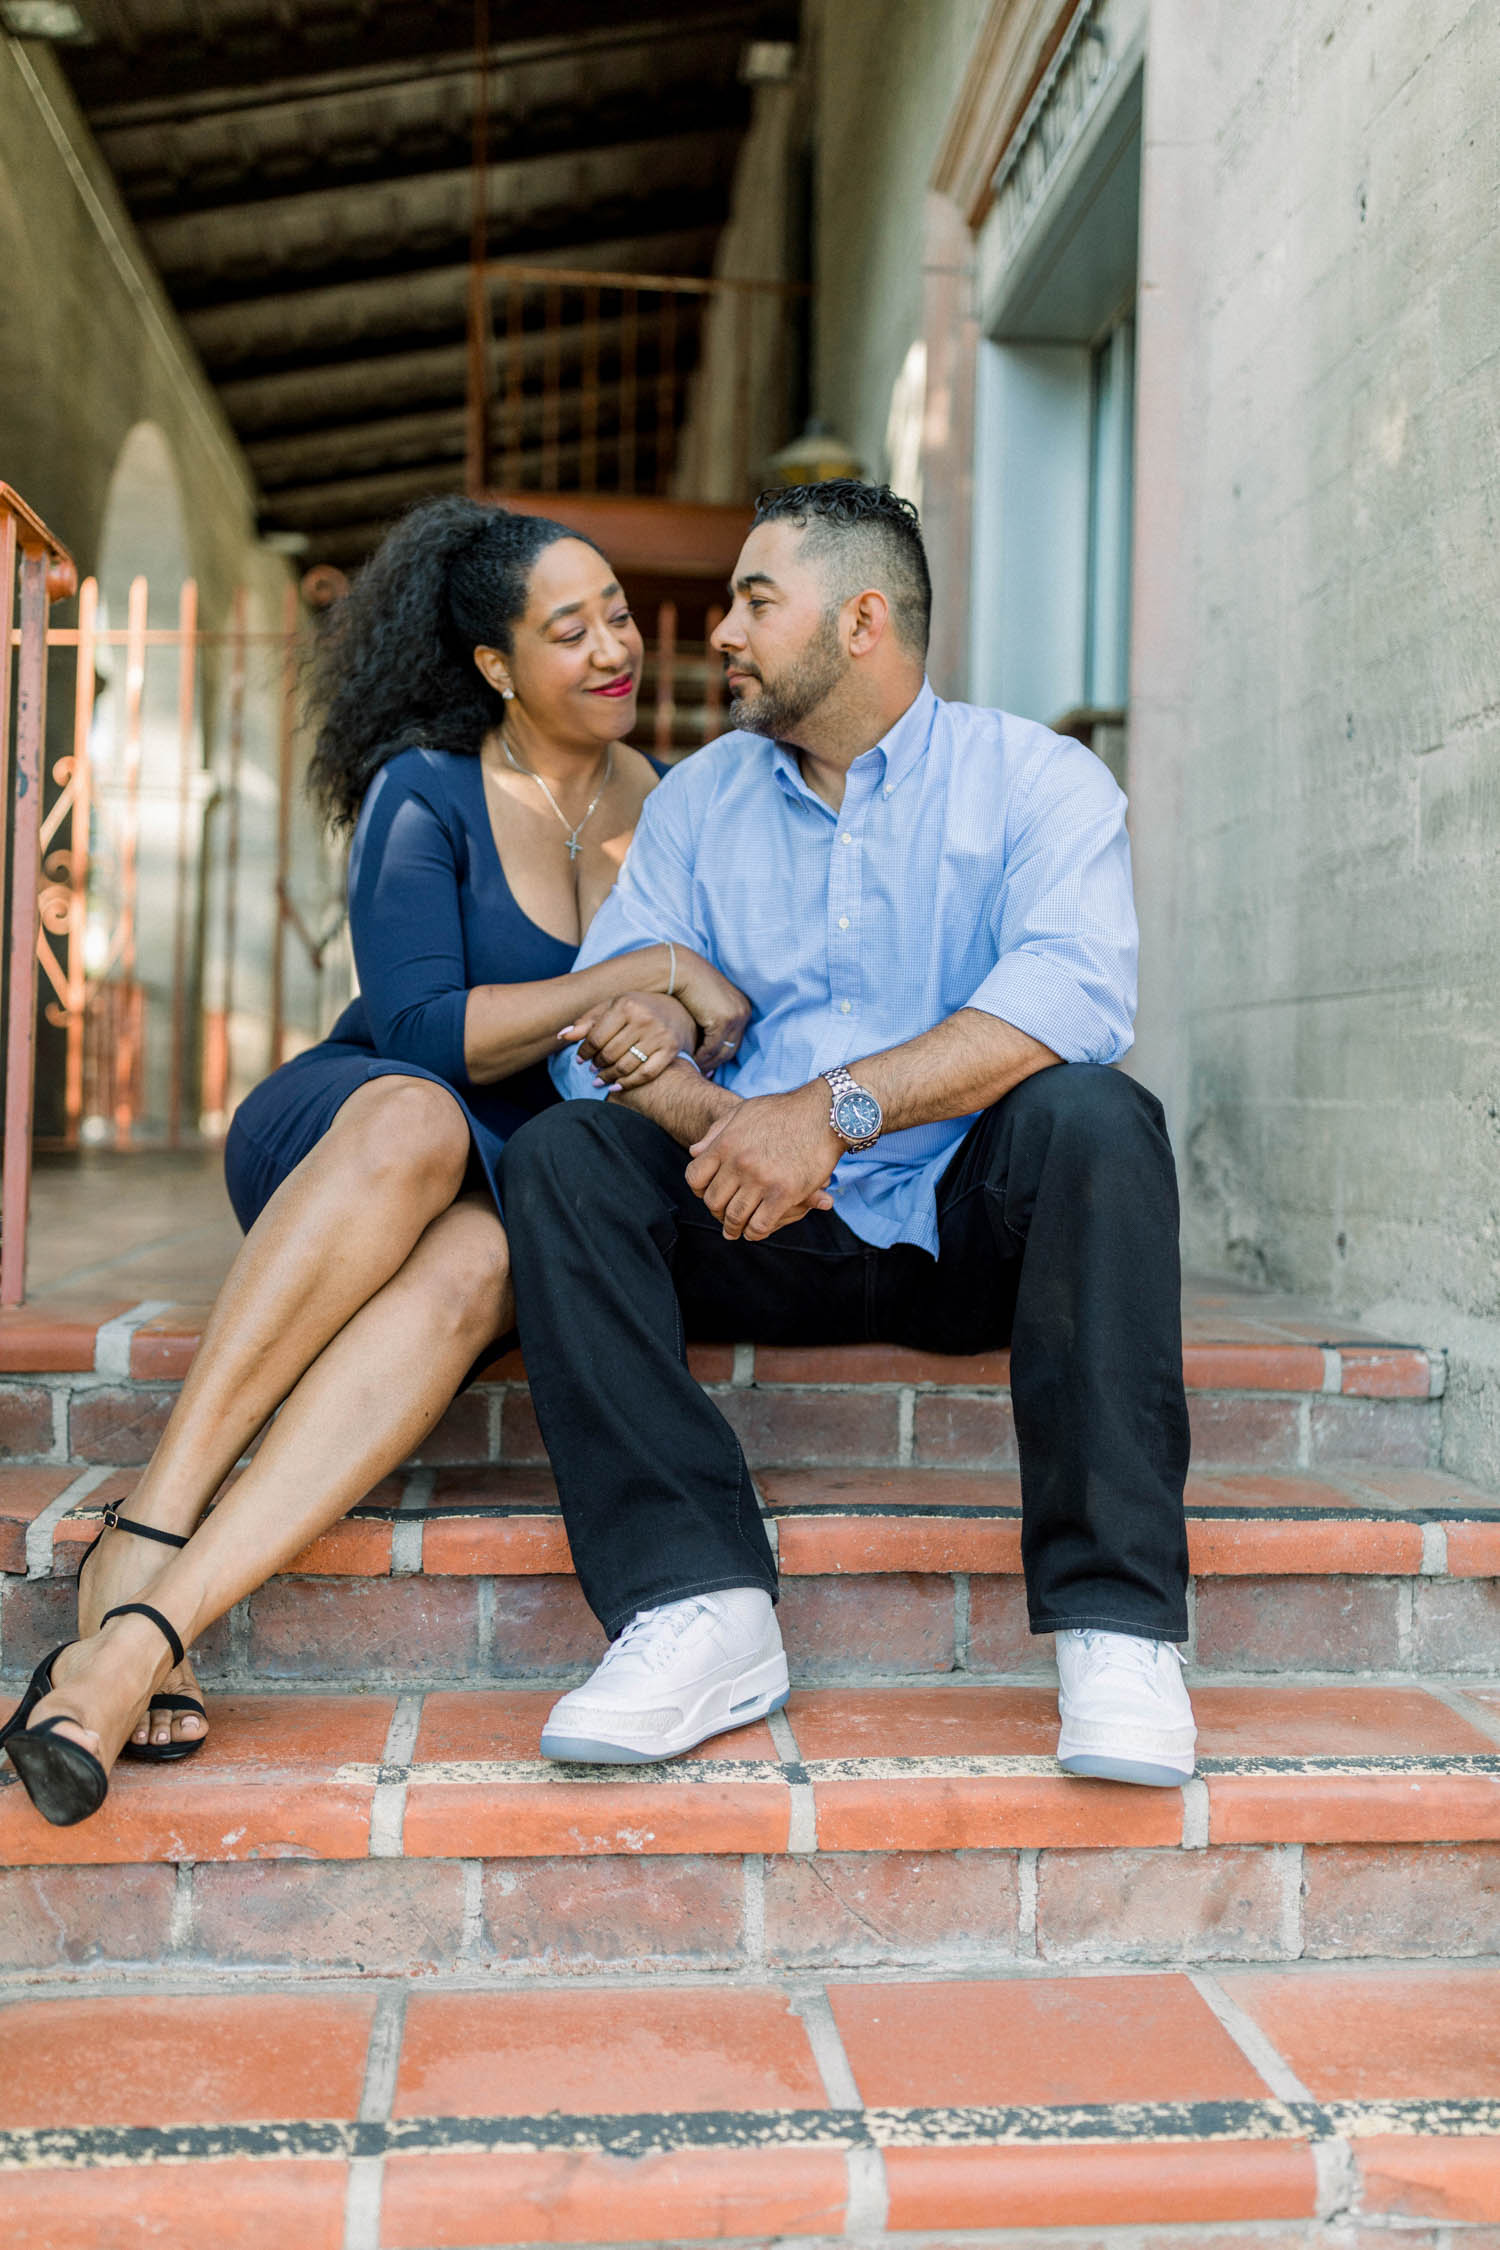 downtown_riverside_engagement_09.jpg